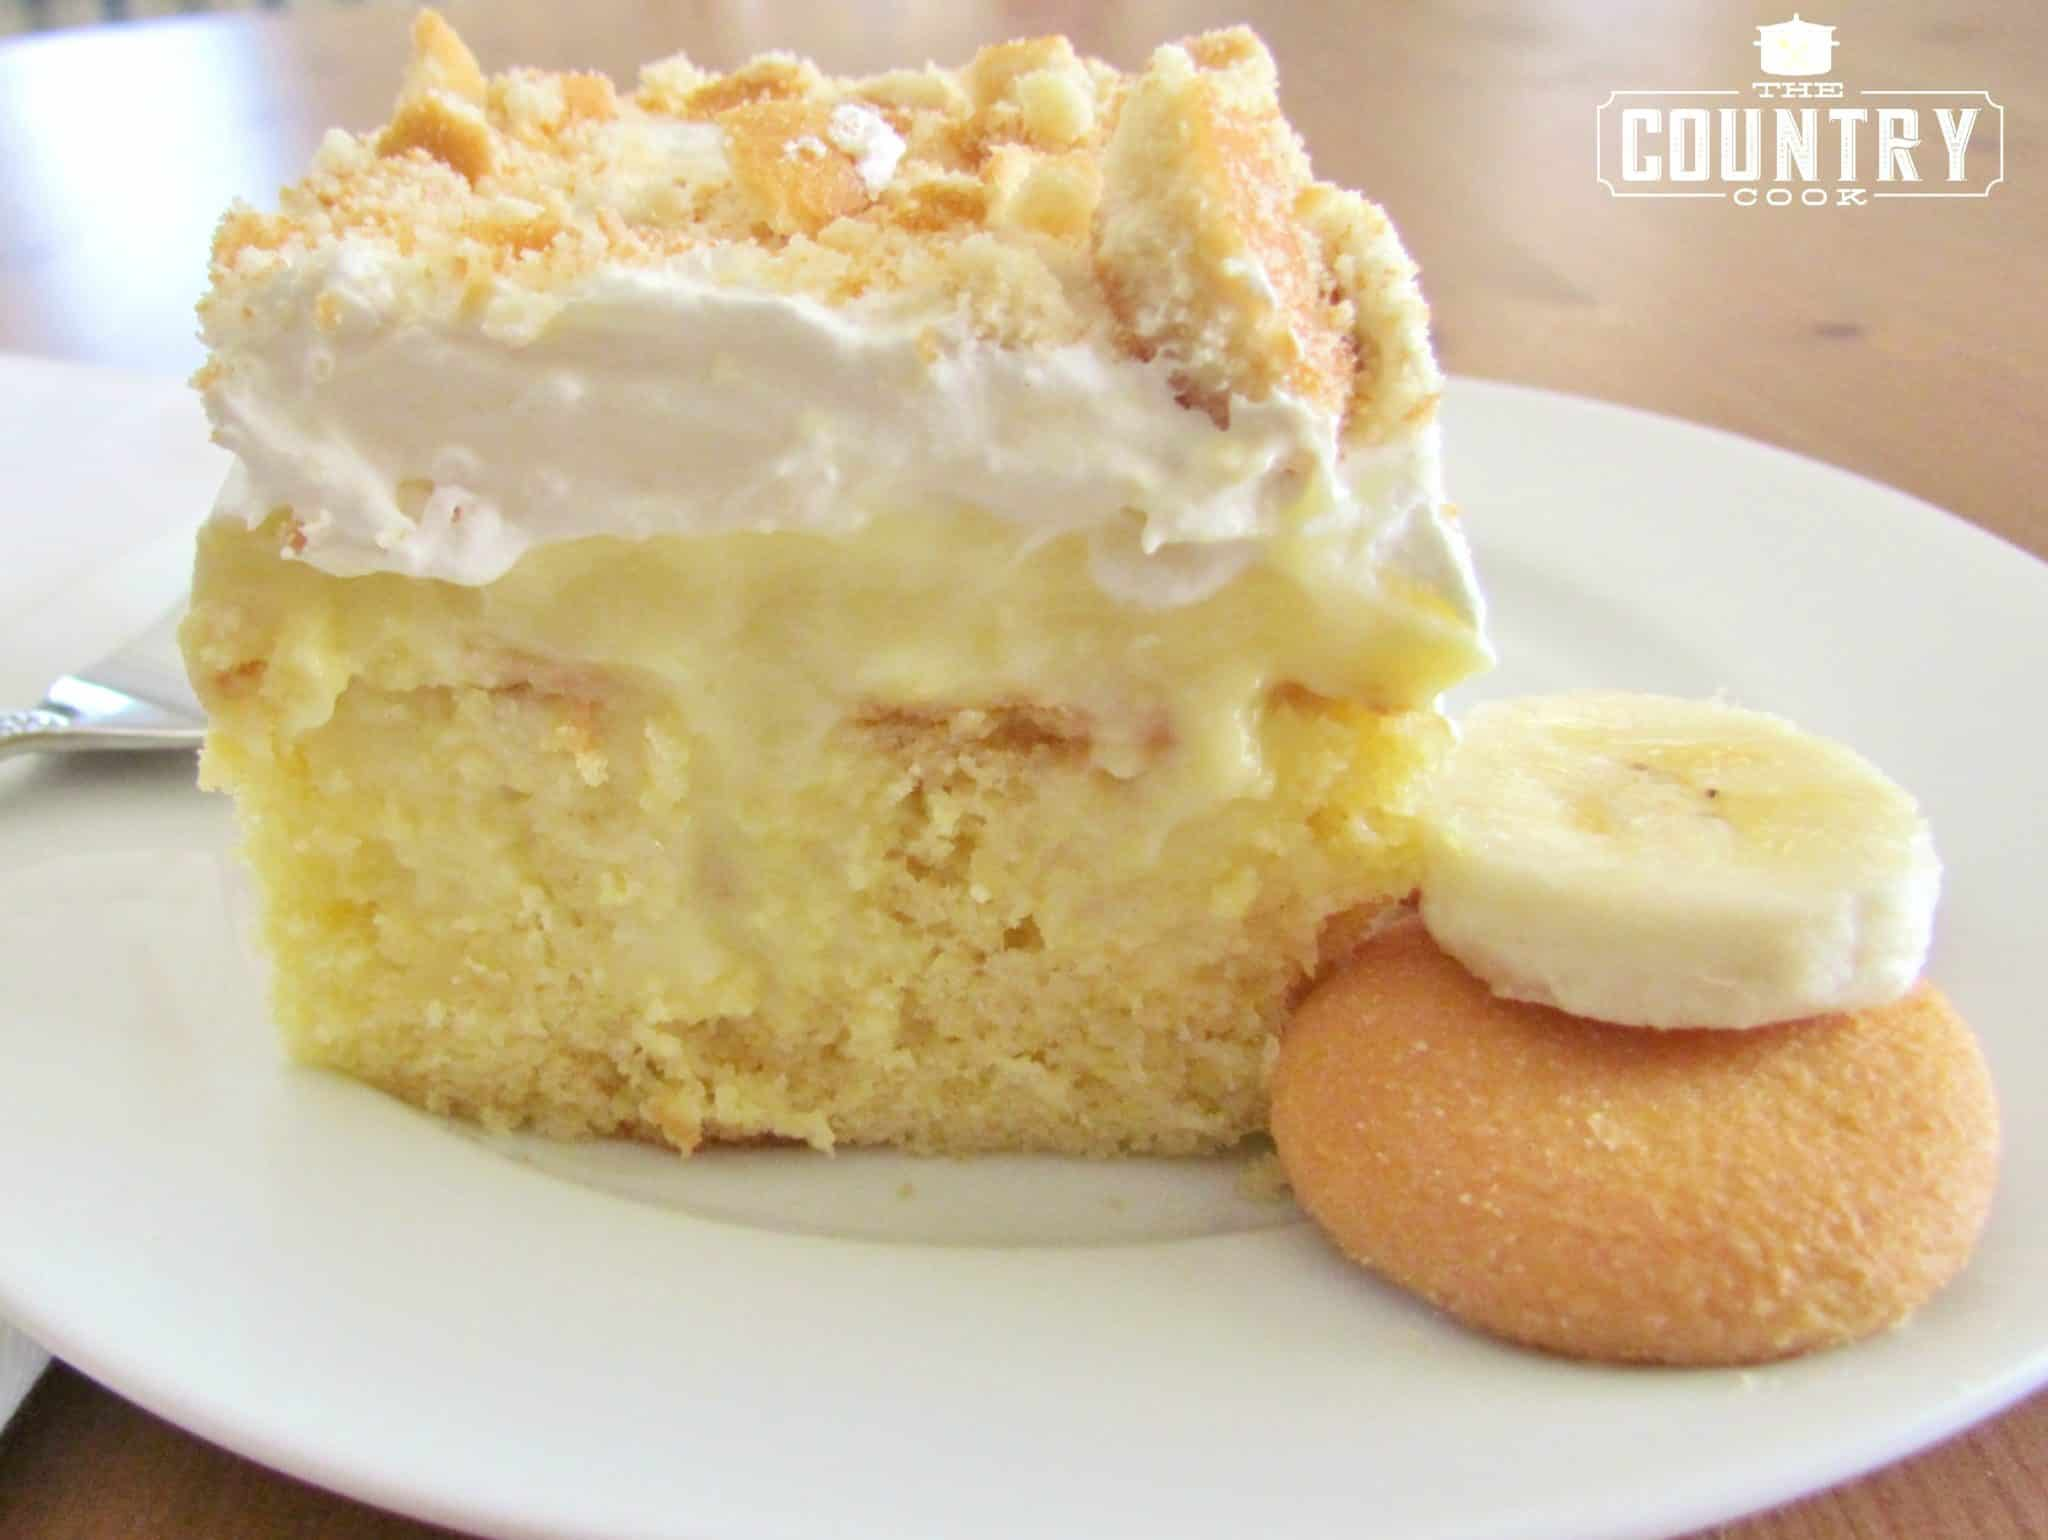 Southern Banana Pineapple Cake